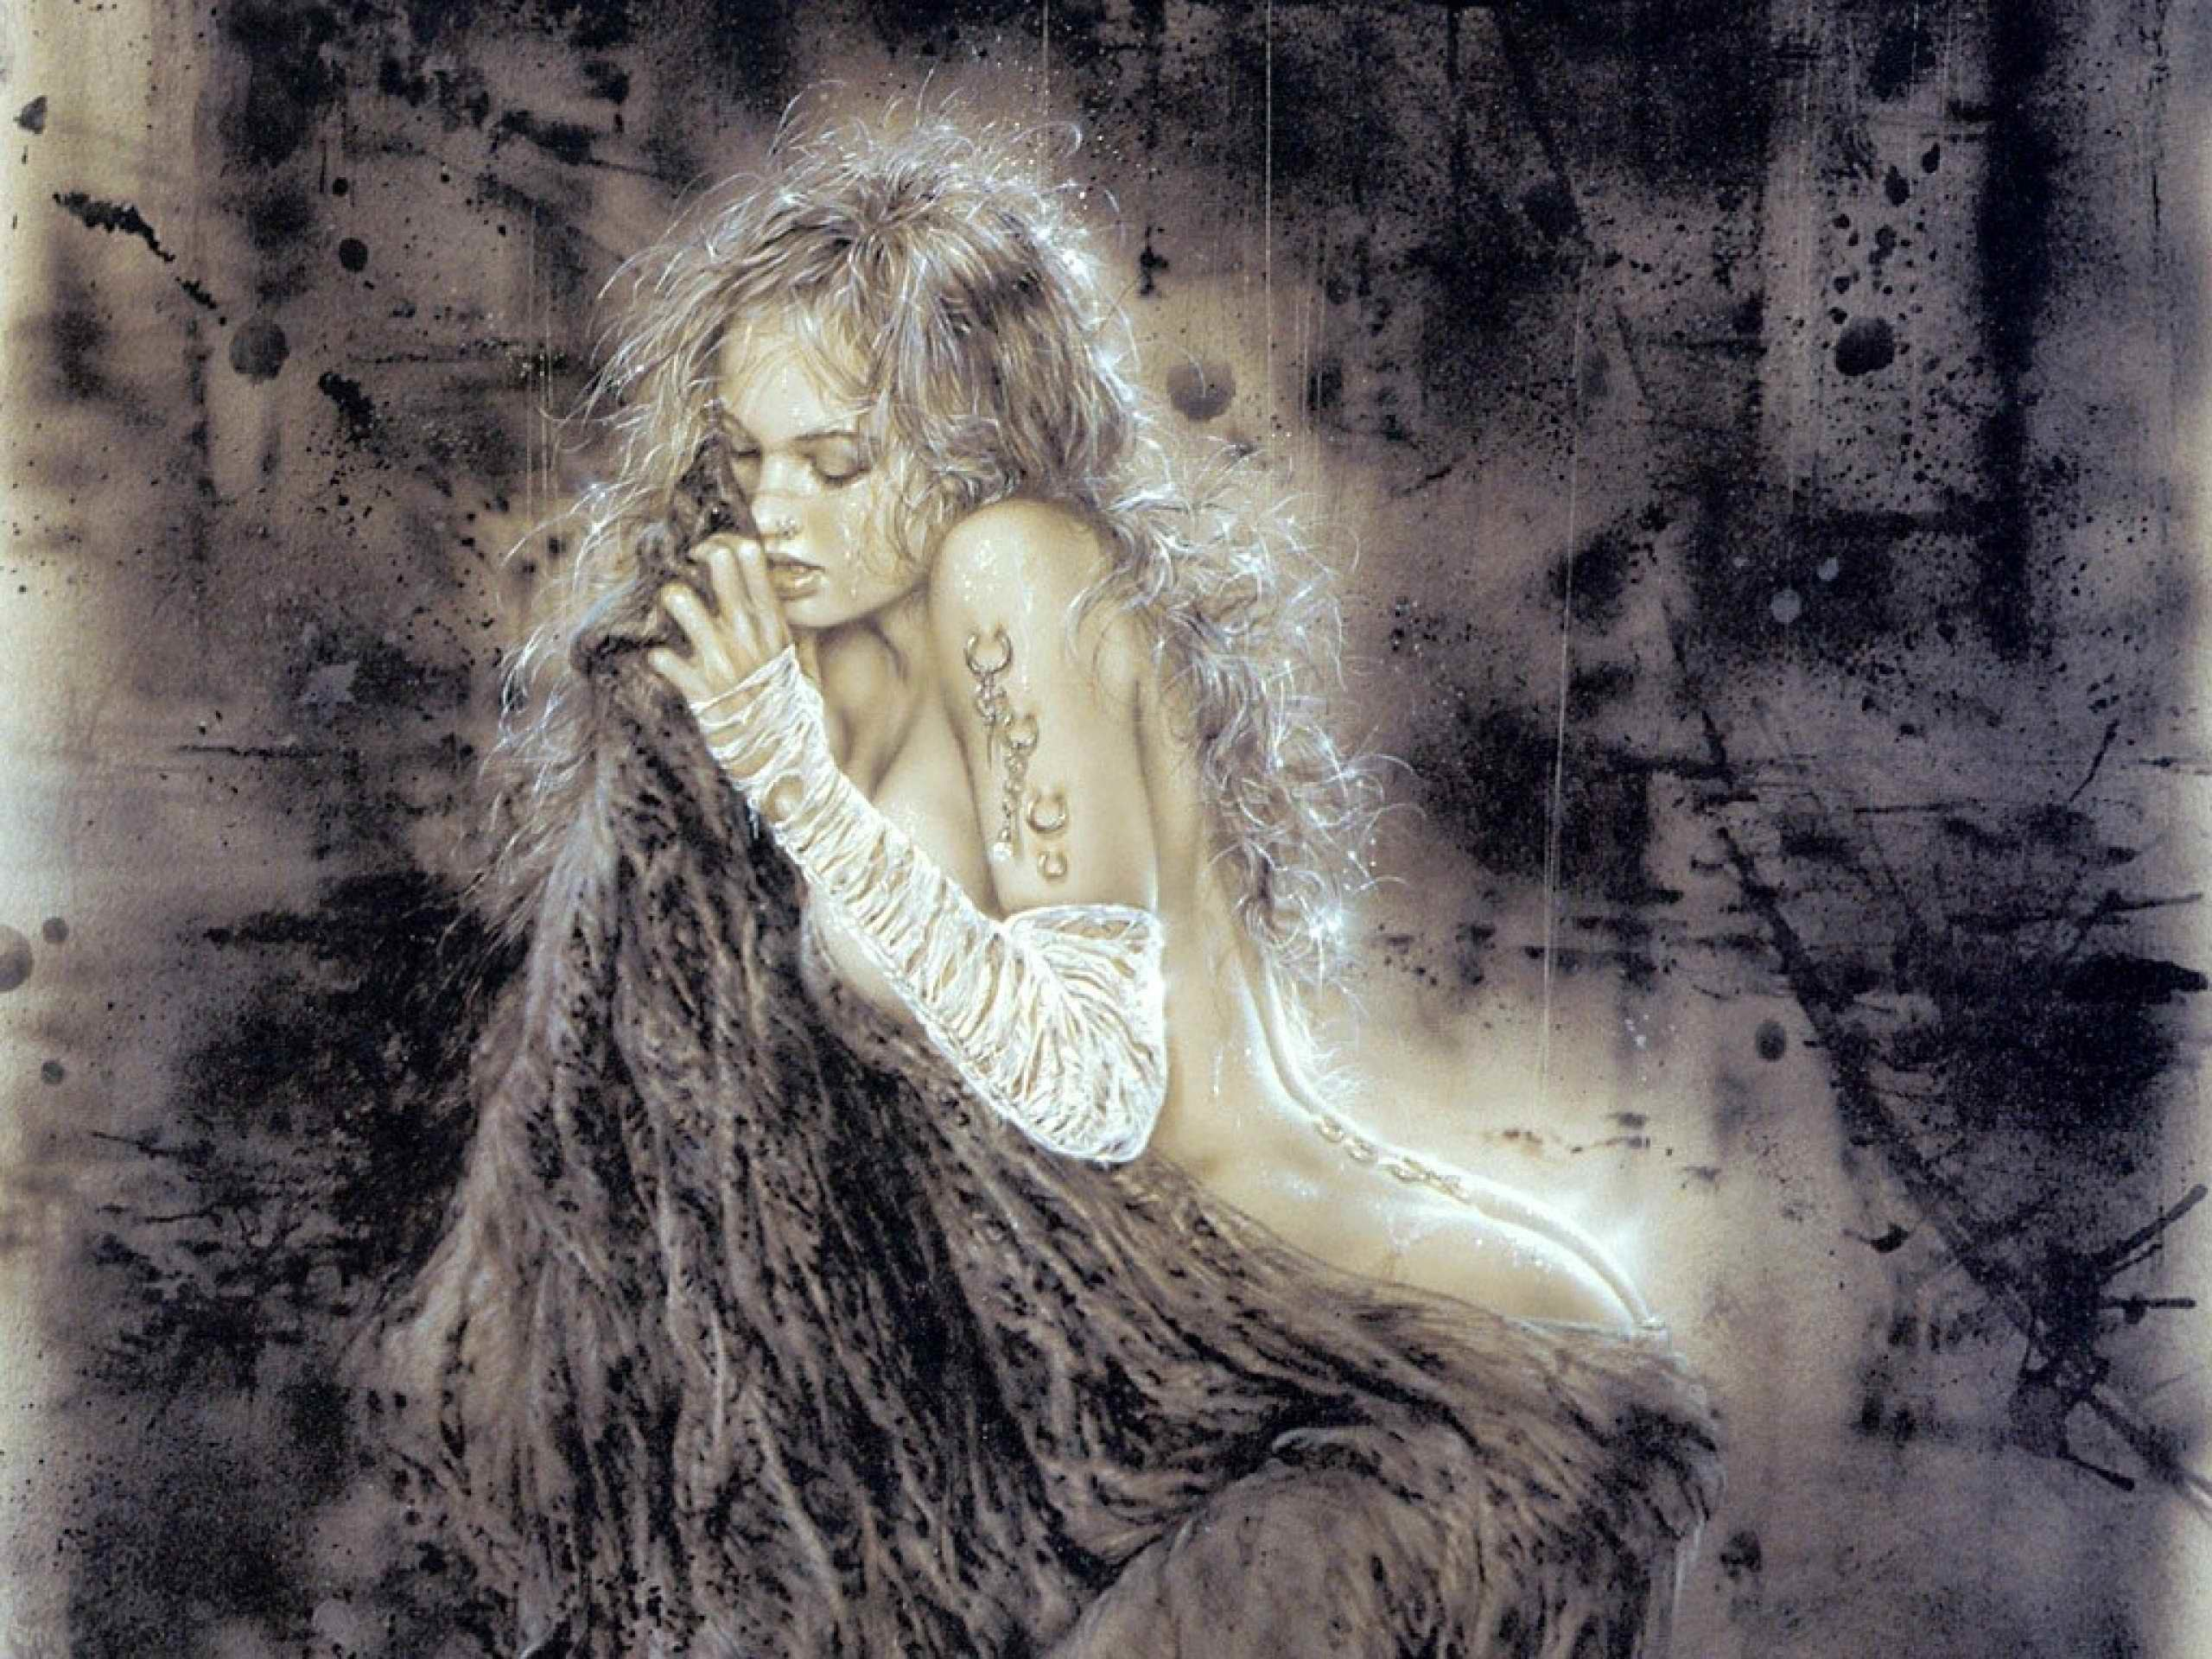 Res: 2560x1920, Luis Royo images Fantasy Woman HD wallpaper and background photos